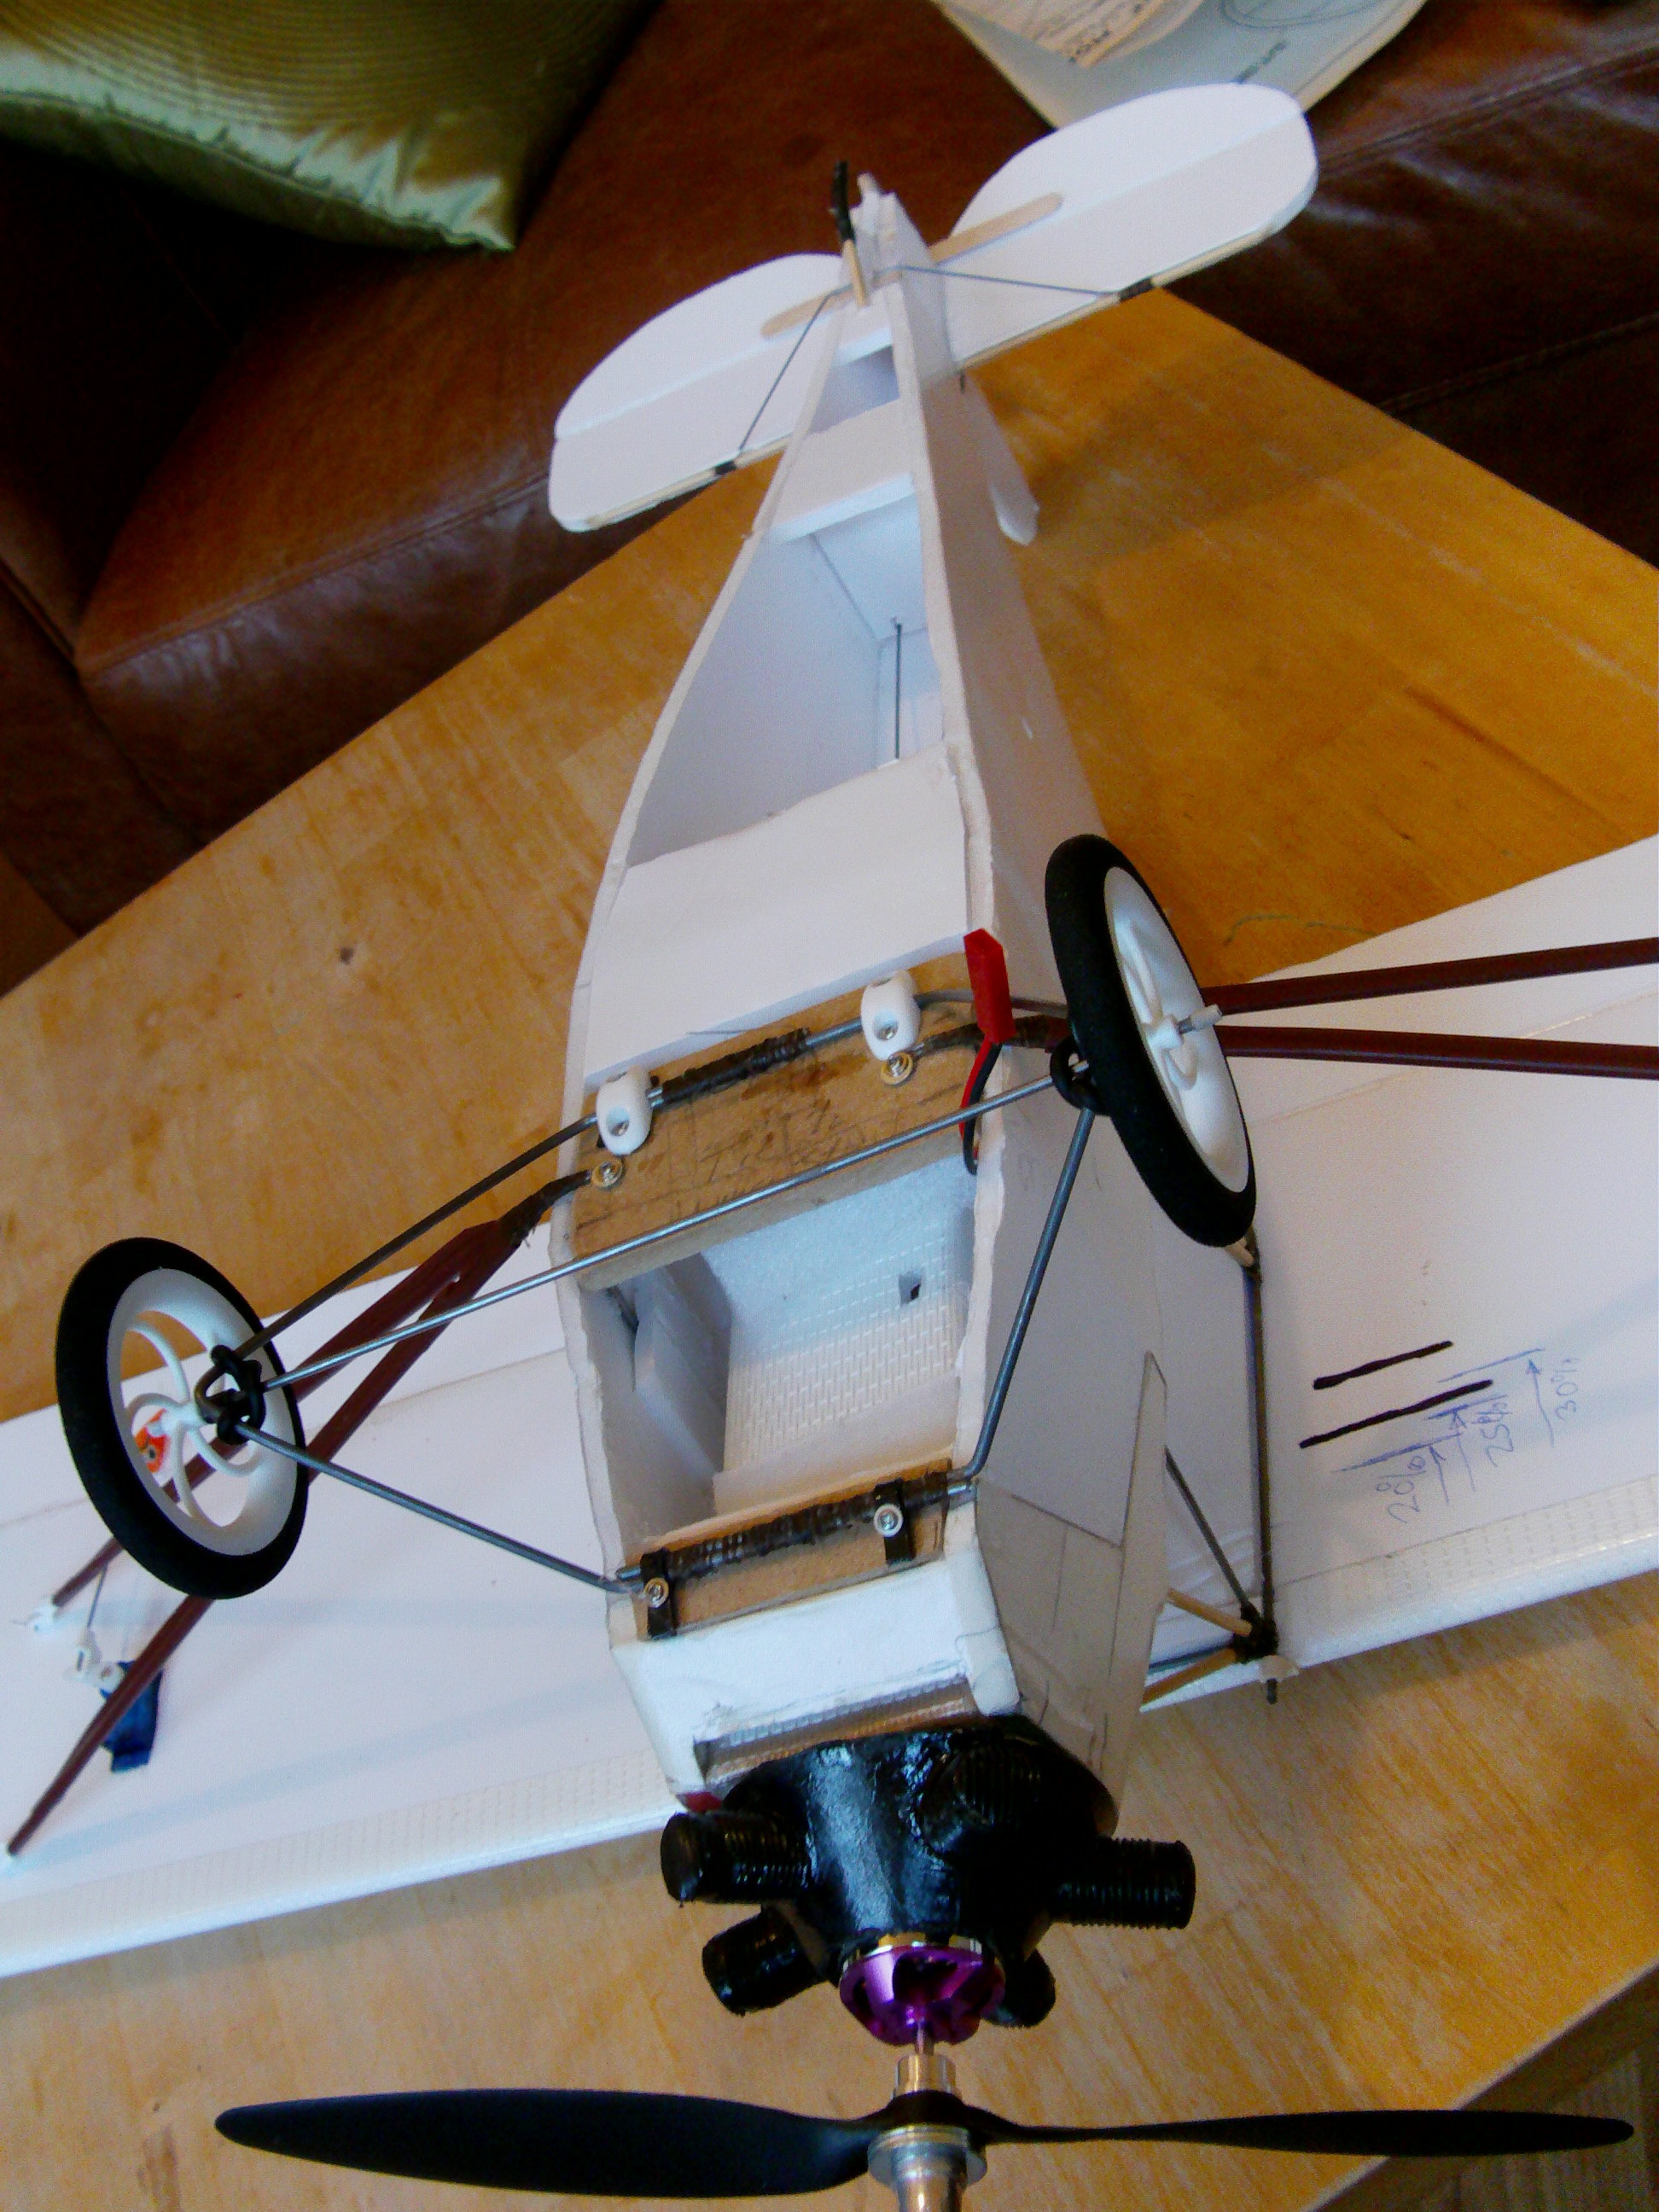 1927 velie monocoupe swappable flite test rh flitetest com Simple Wiring Diagrams Light Switch Wiring Diagram